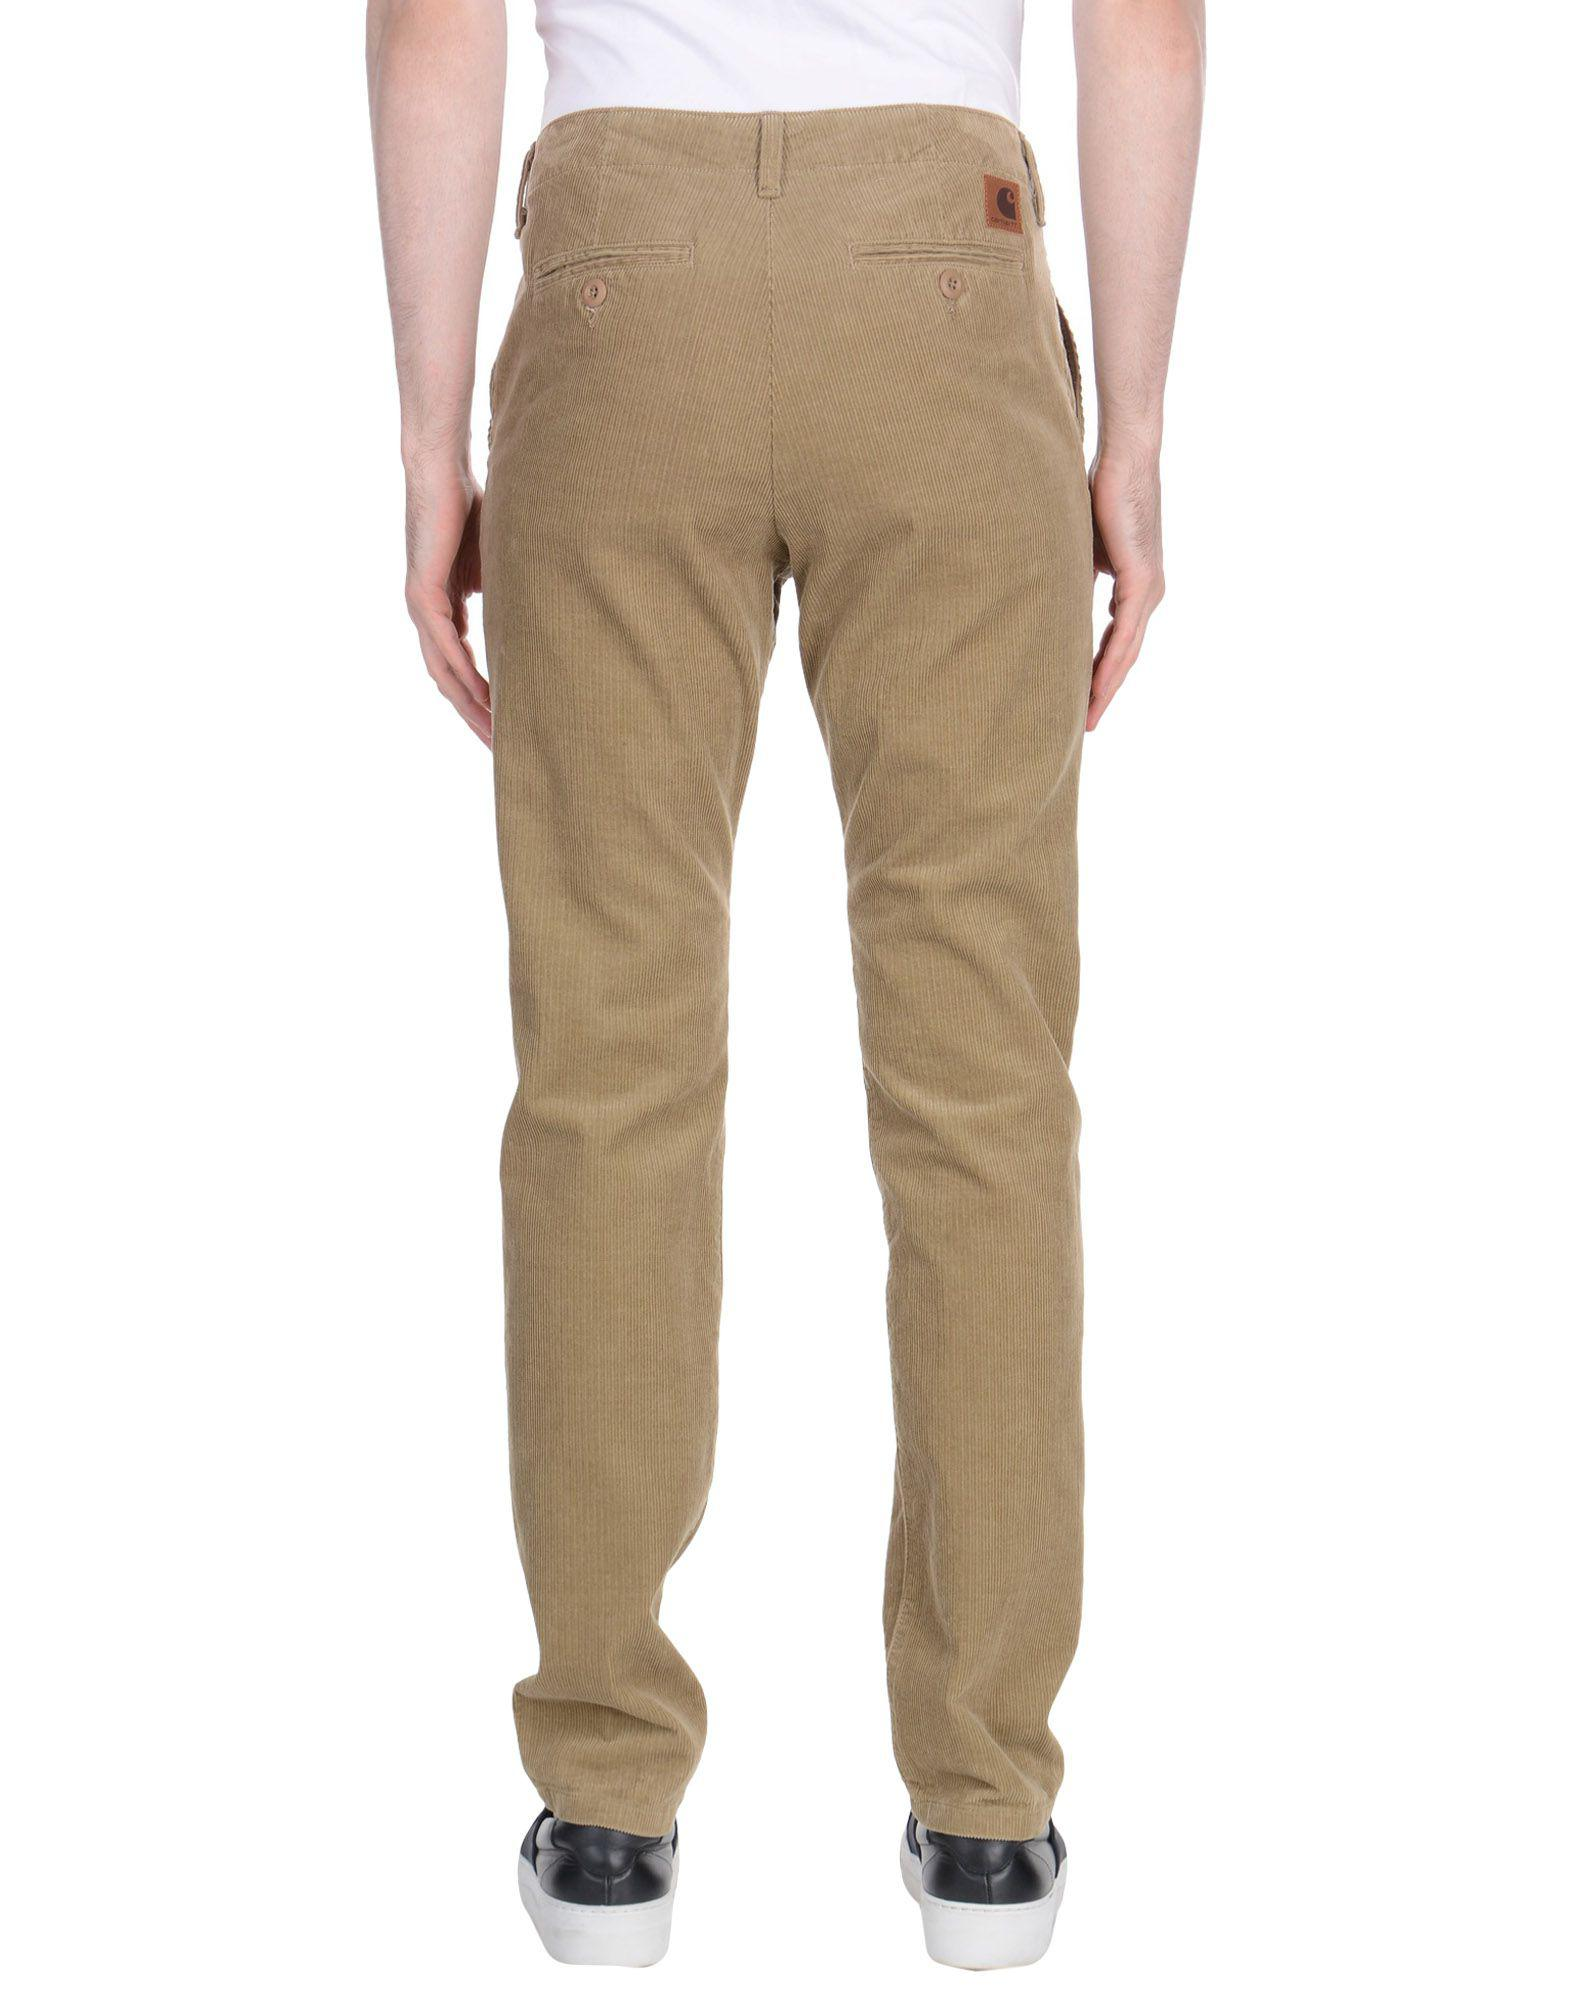 Carhartt Corduroy Casual Pants in Sand (Natural) for Men